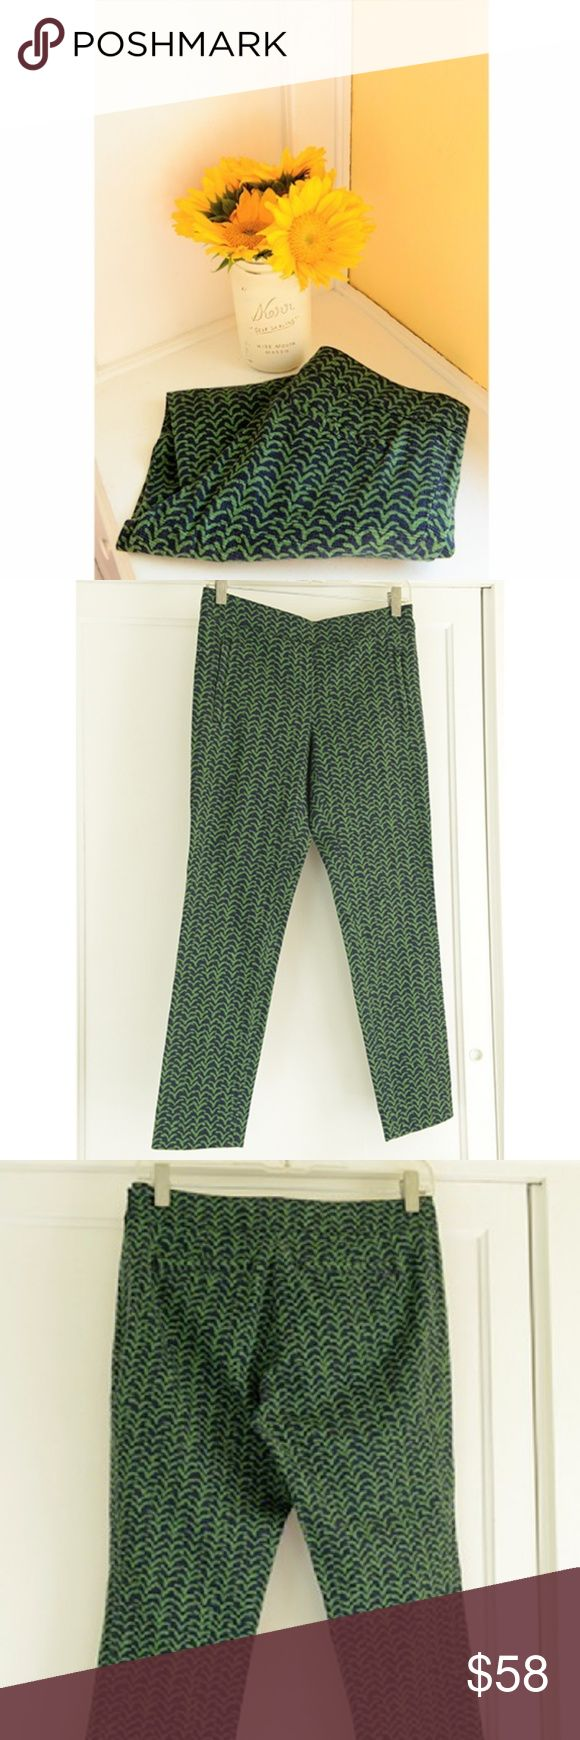 "NWOT Cartonnier Green/Navy Chevron Pants These are new, never worn Cartonnier pants in green and navy. Absolutely adorable. :) The tag is cut for final sale. Size 2. Measurements: waist: 14"", inseam: 25.75"" (cropped, but not quite capris), front rise: 9.5"", back rise: 11.5"". Enjoy! Anthropologie Pants Ankle & Cropped"